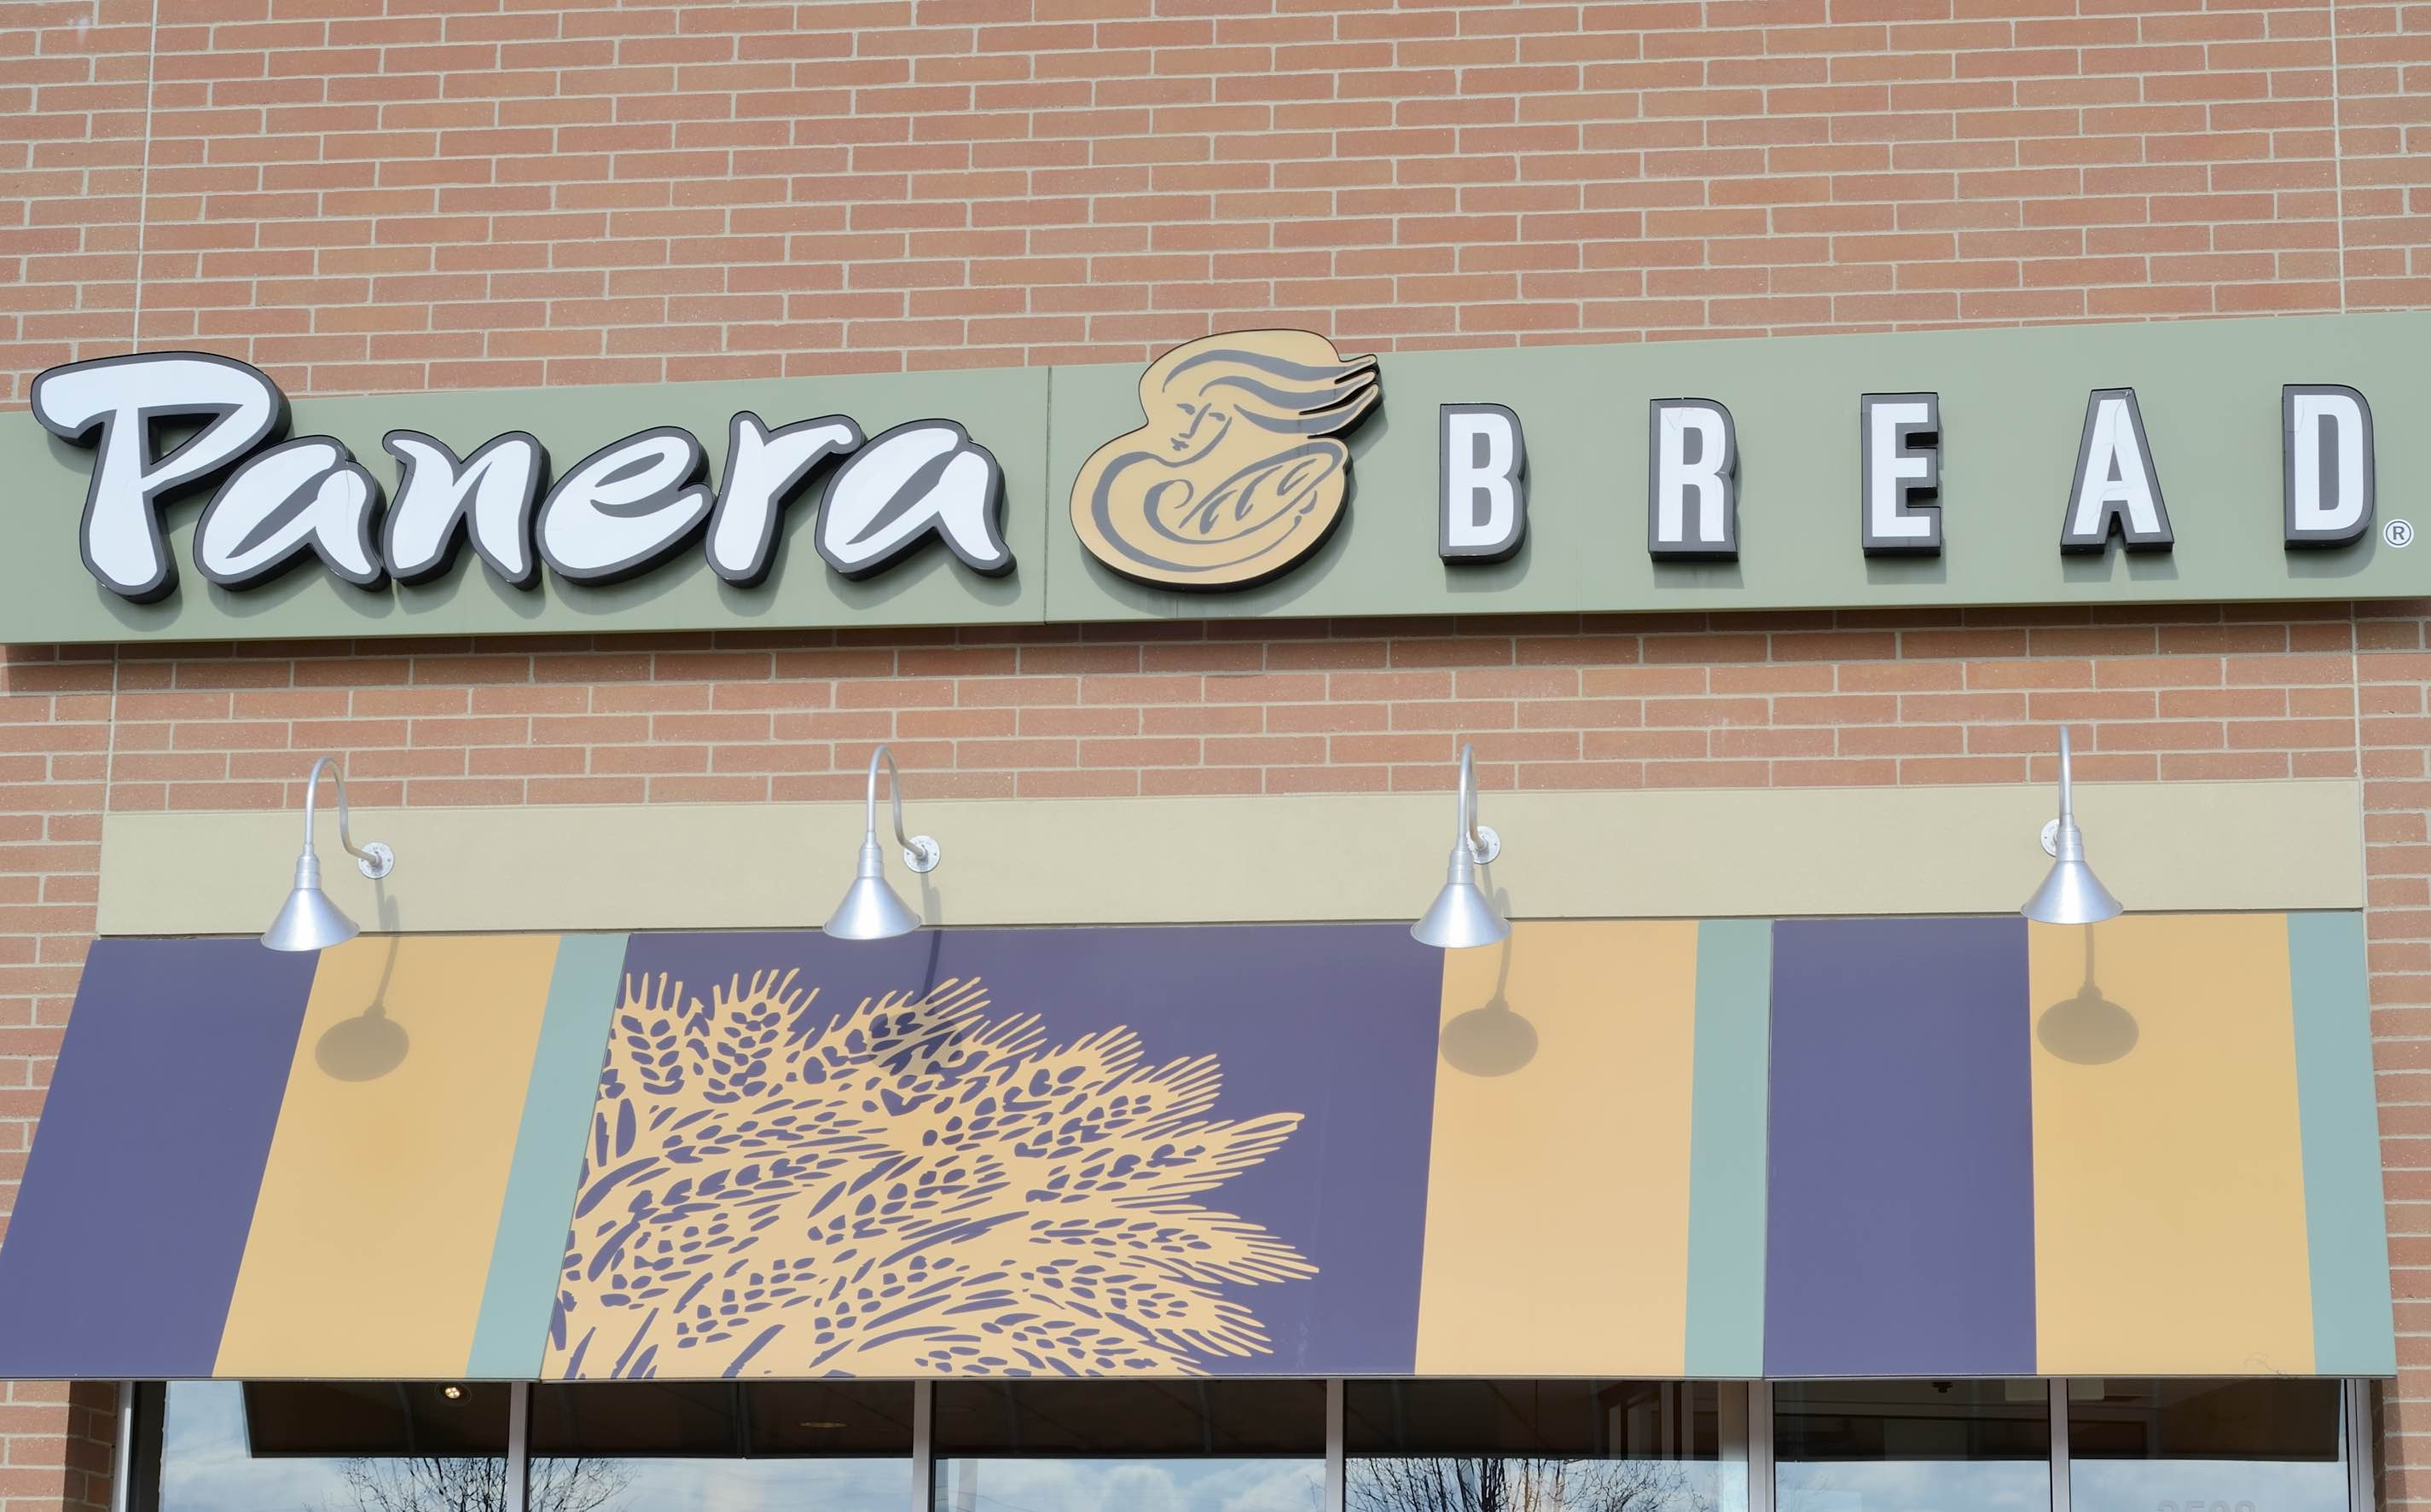 Contact Panera Bread Customer Service